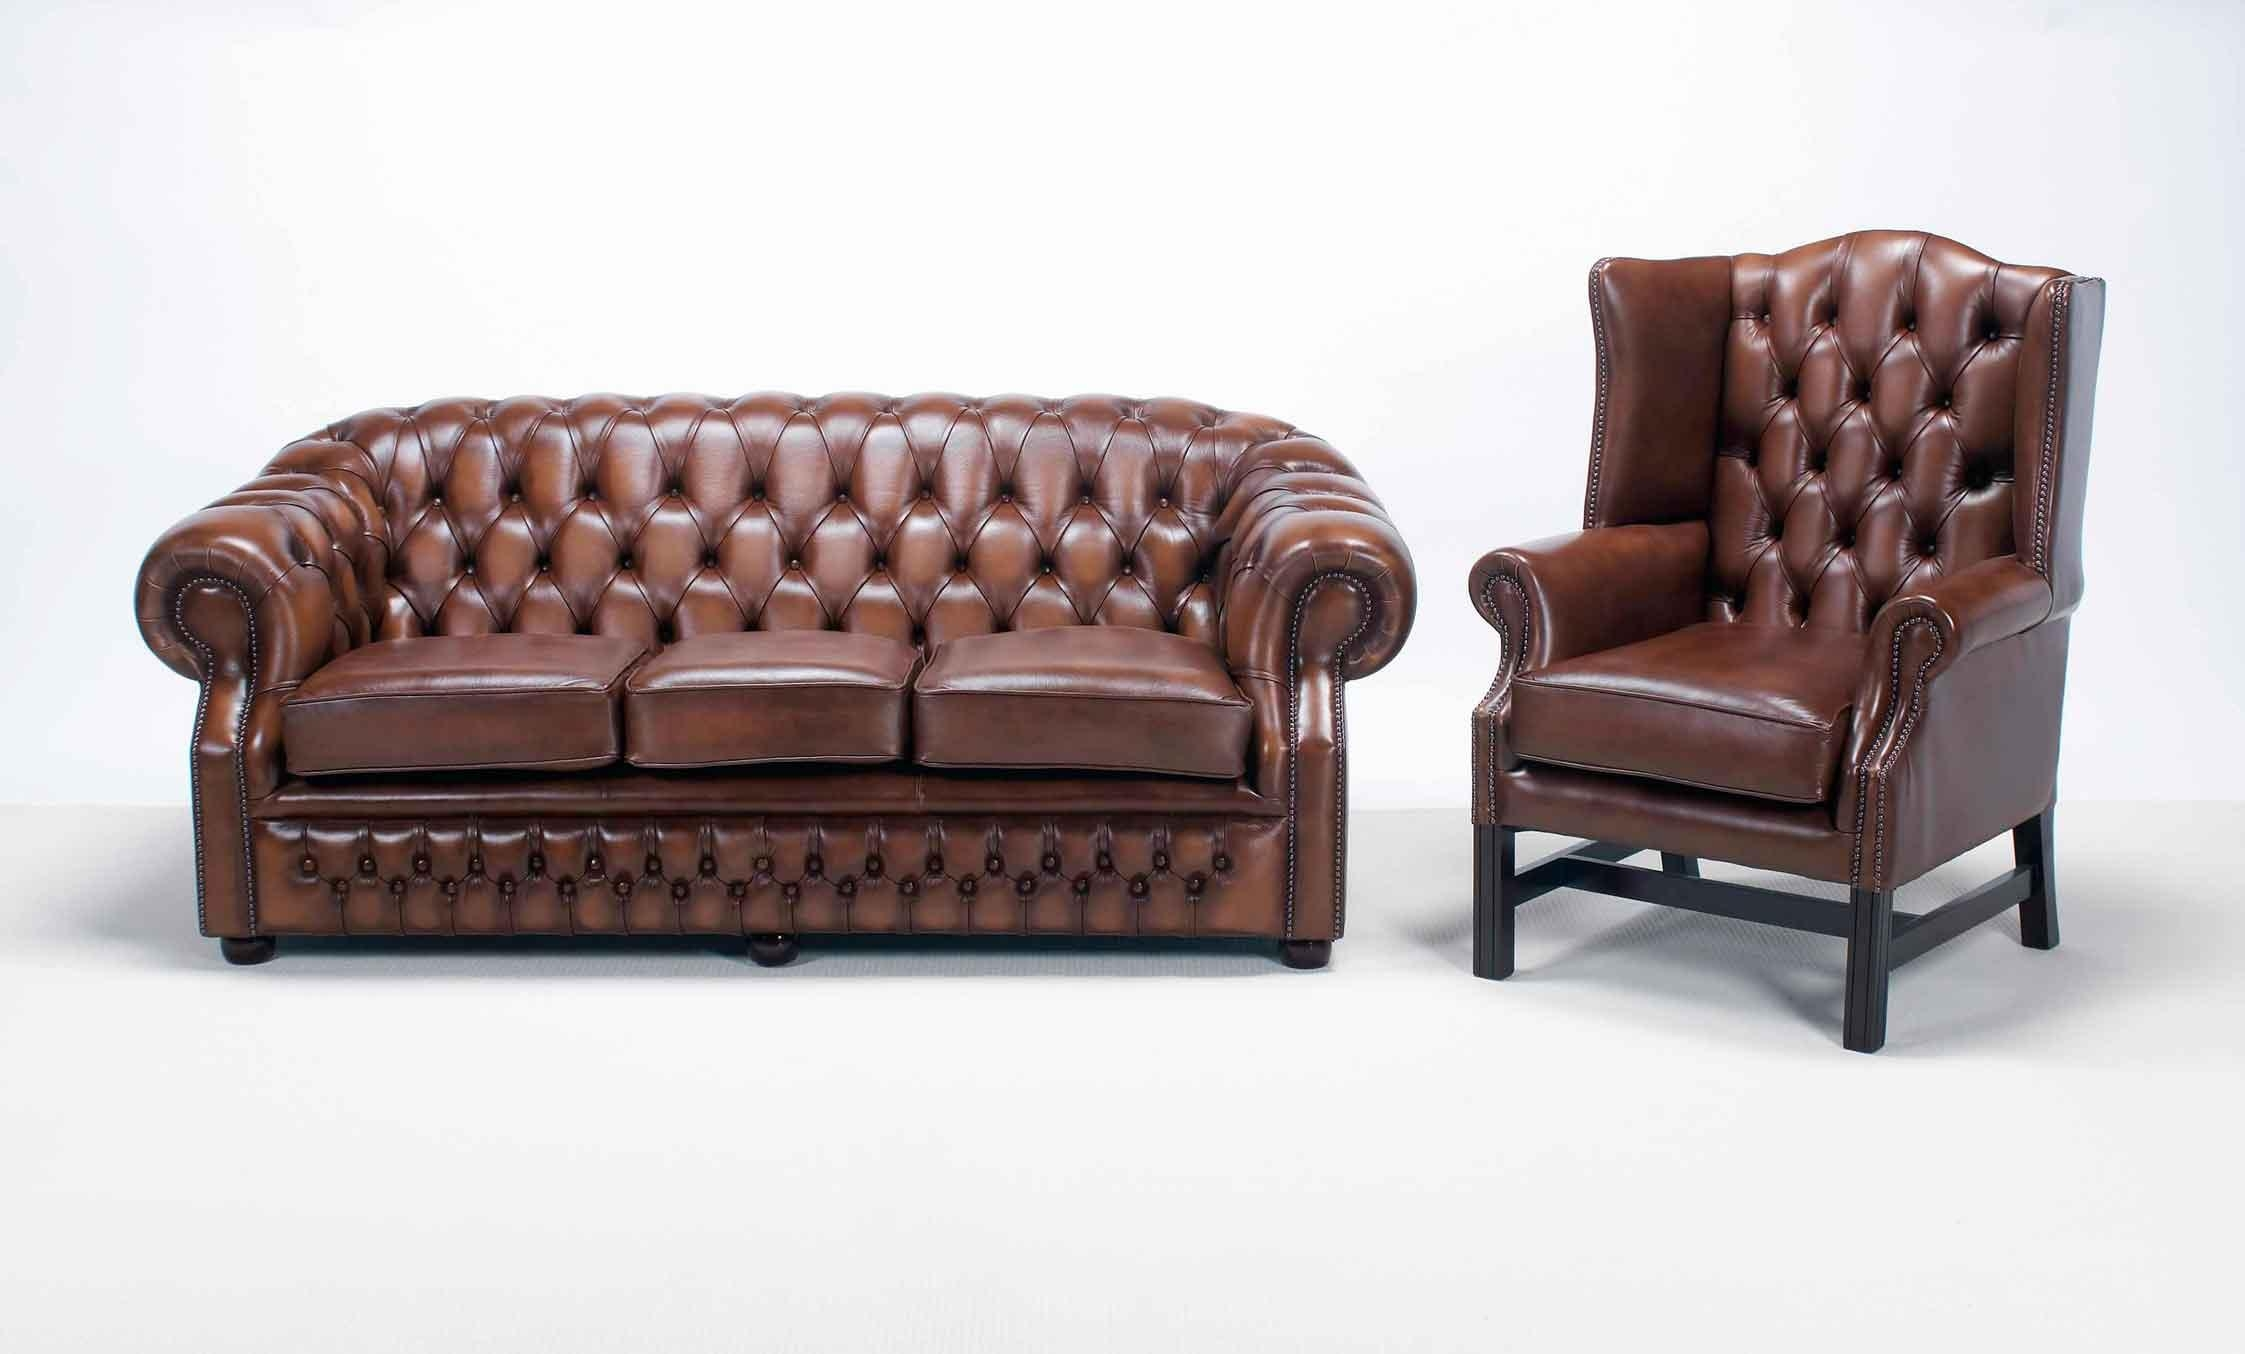 How To Identify A Real Chesterfield Sofa — Interior Home Design In Chesterfield Sofa And Chairs (View 2 of 20)